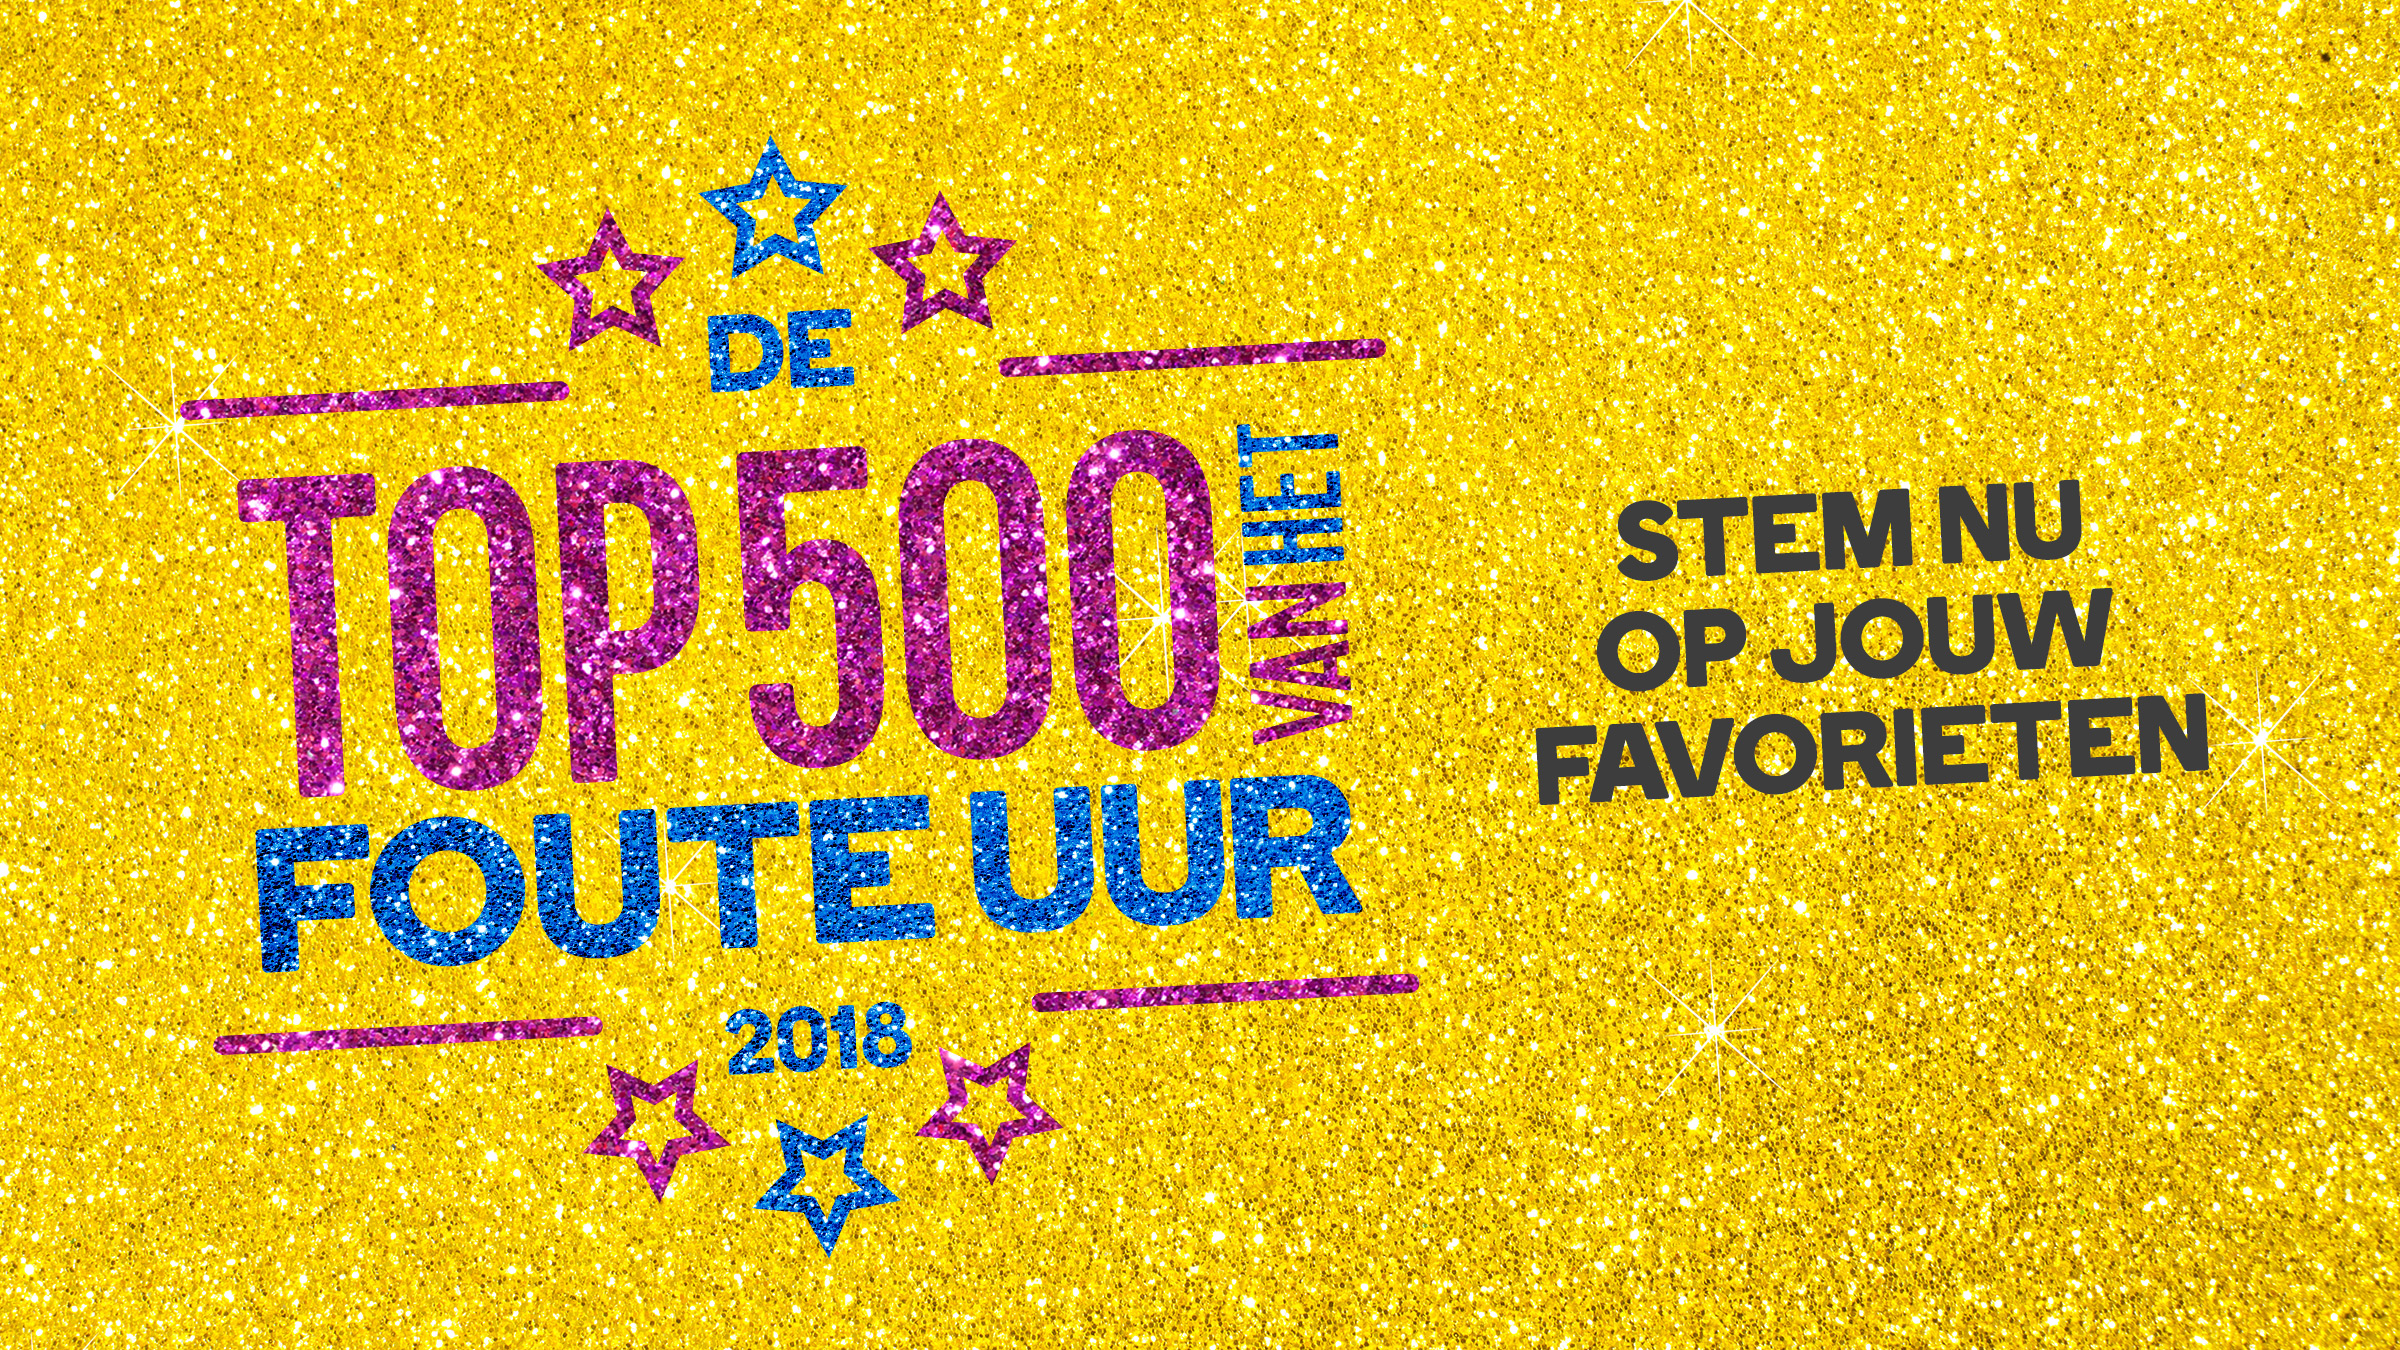 Qmusic teaser top500fout stem